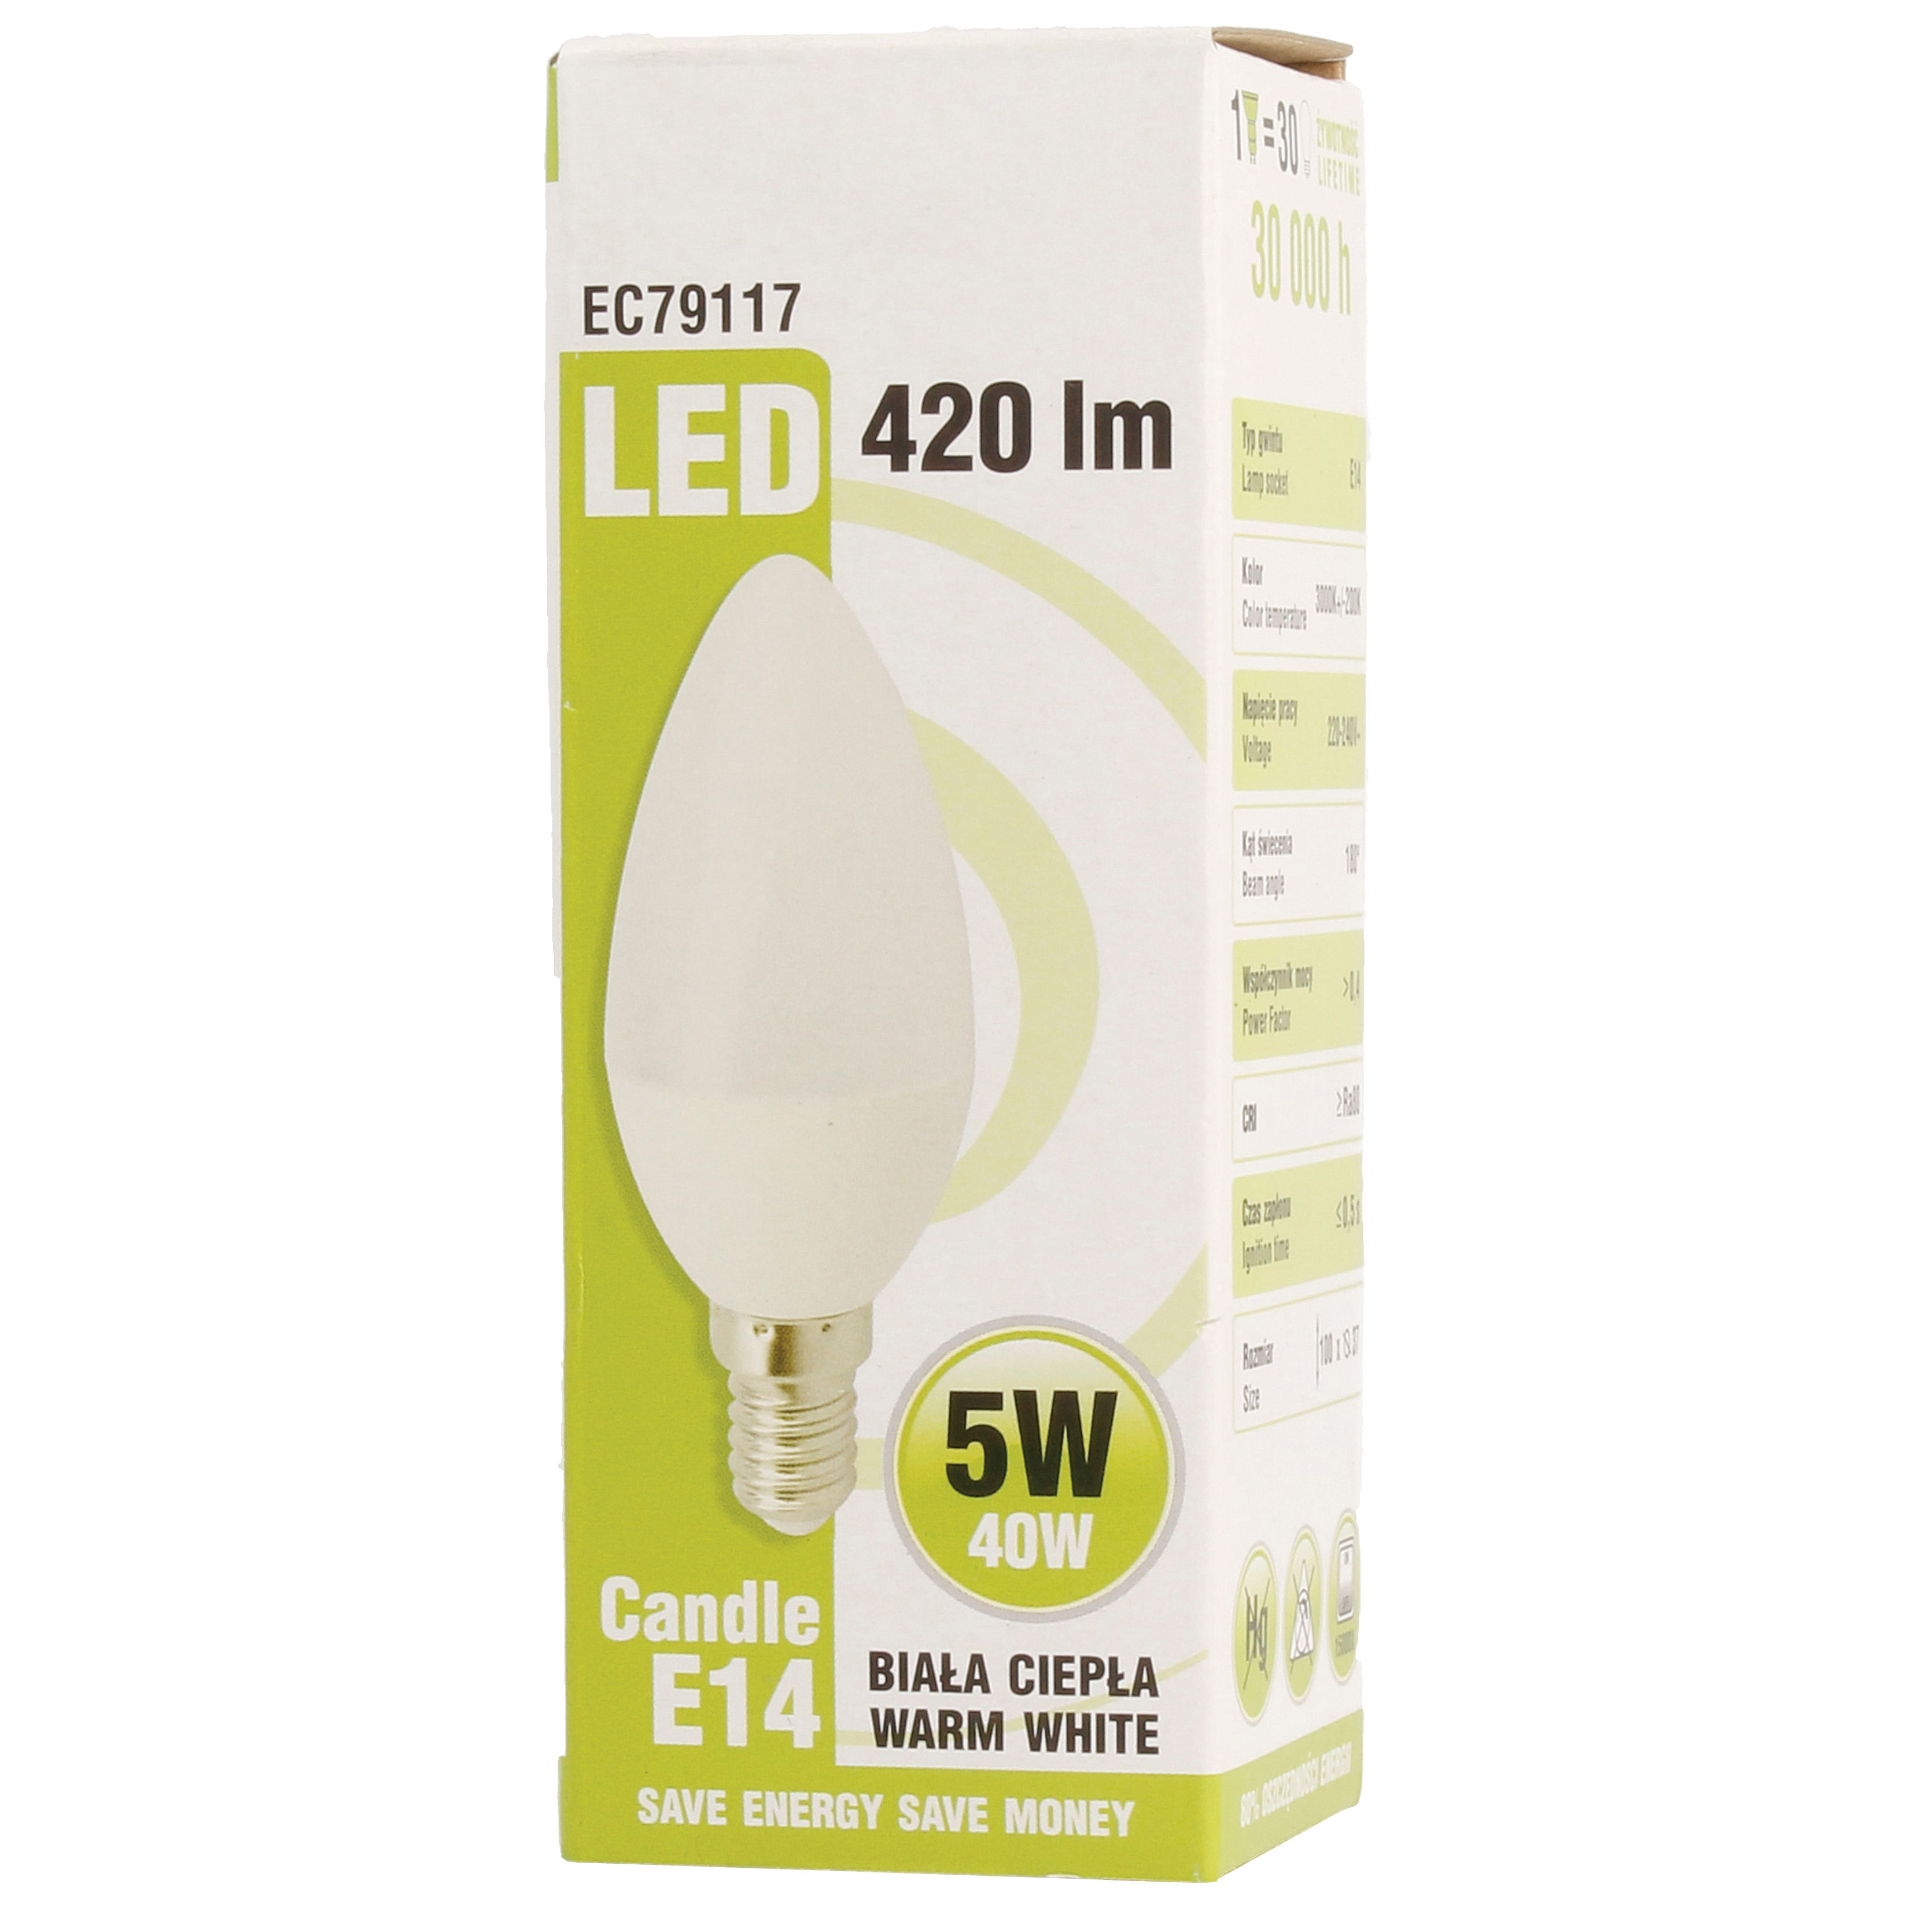 Ecolight LED Candle Bulb 5W E14 / SES Warm White 420 Lumen EC79117